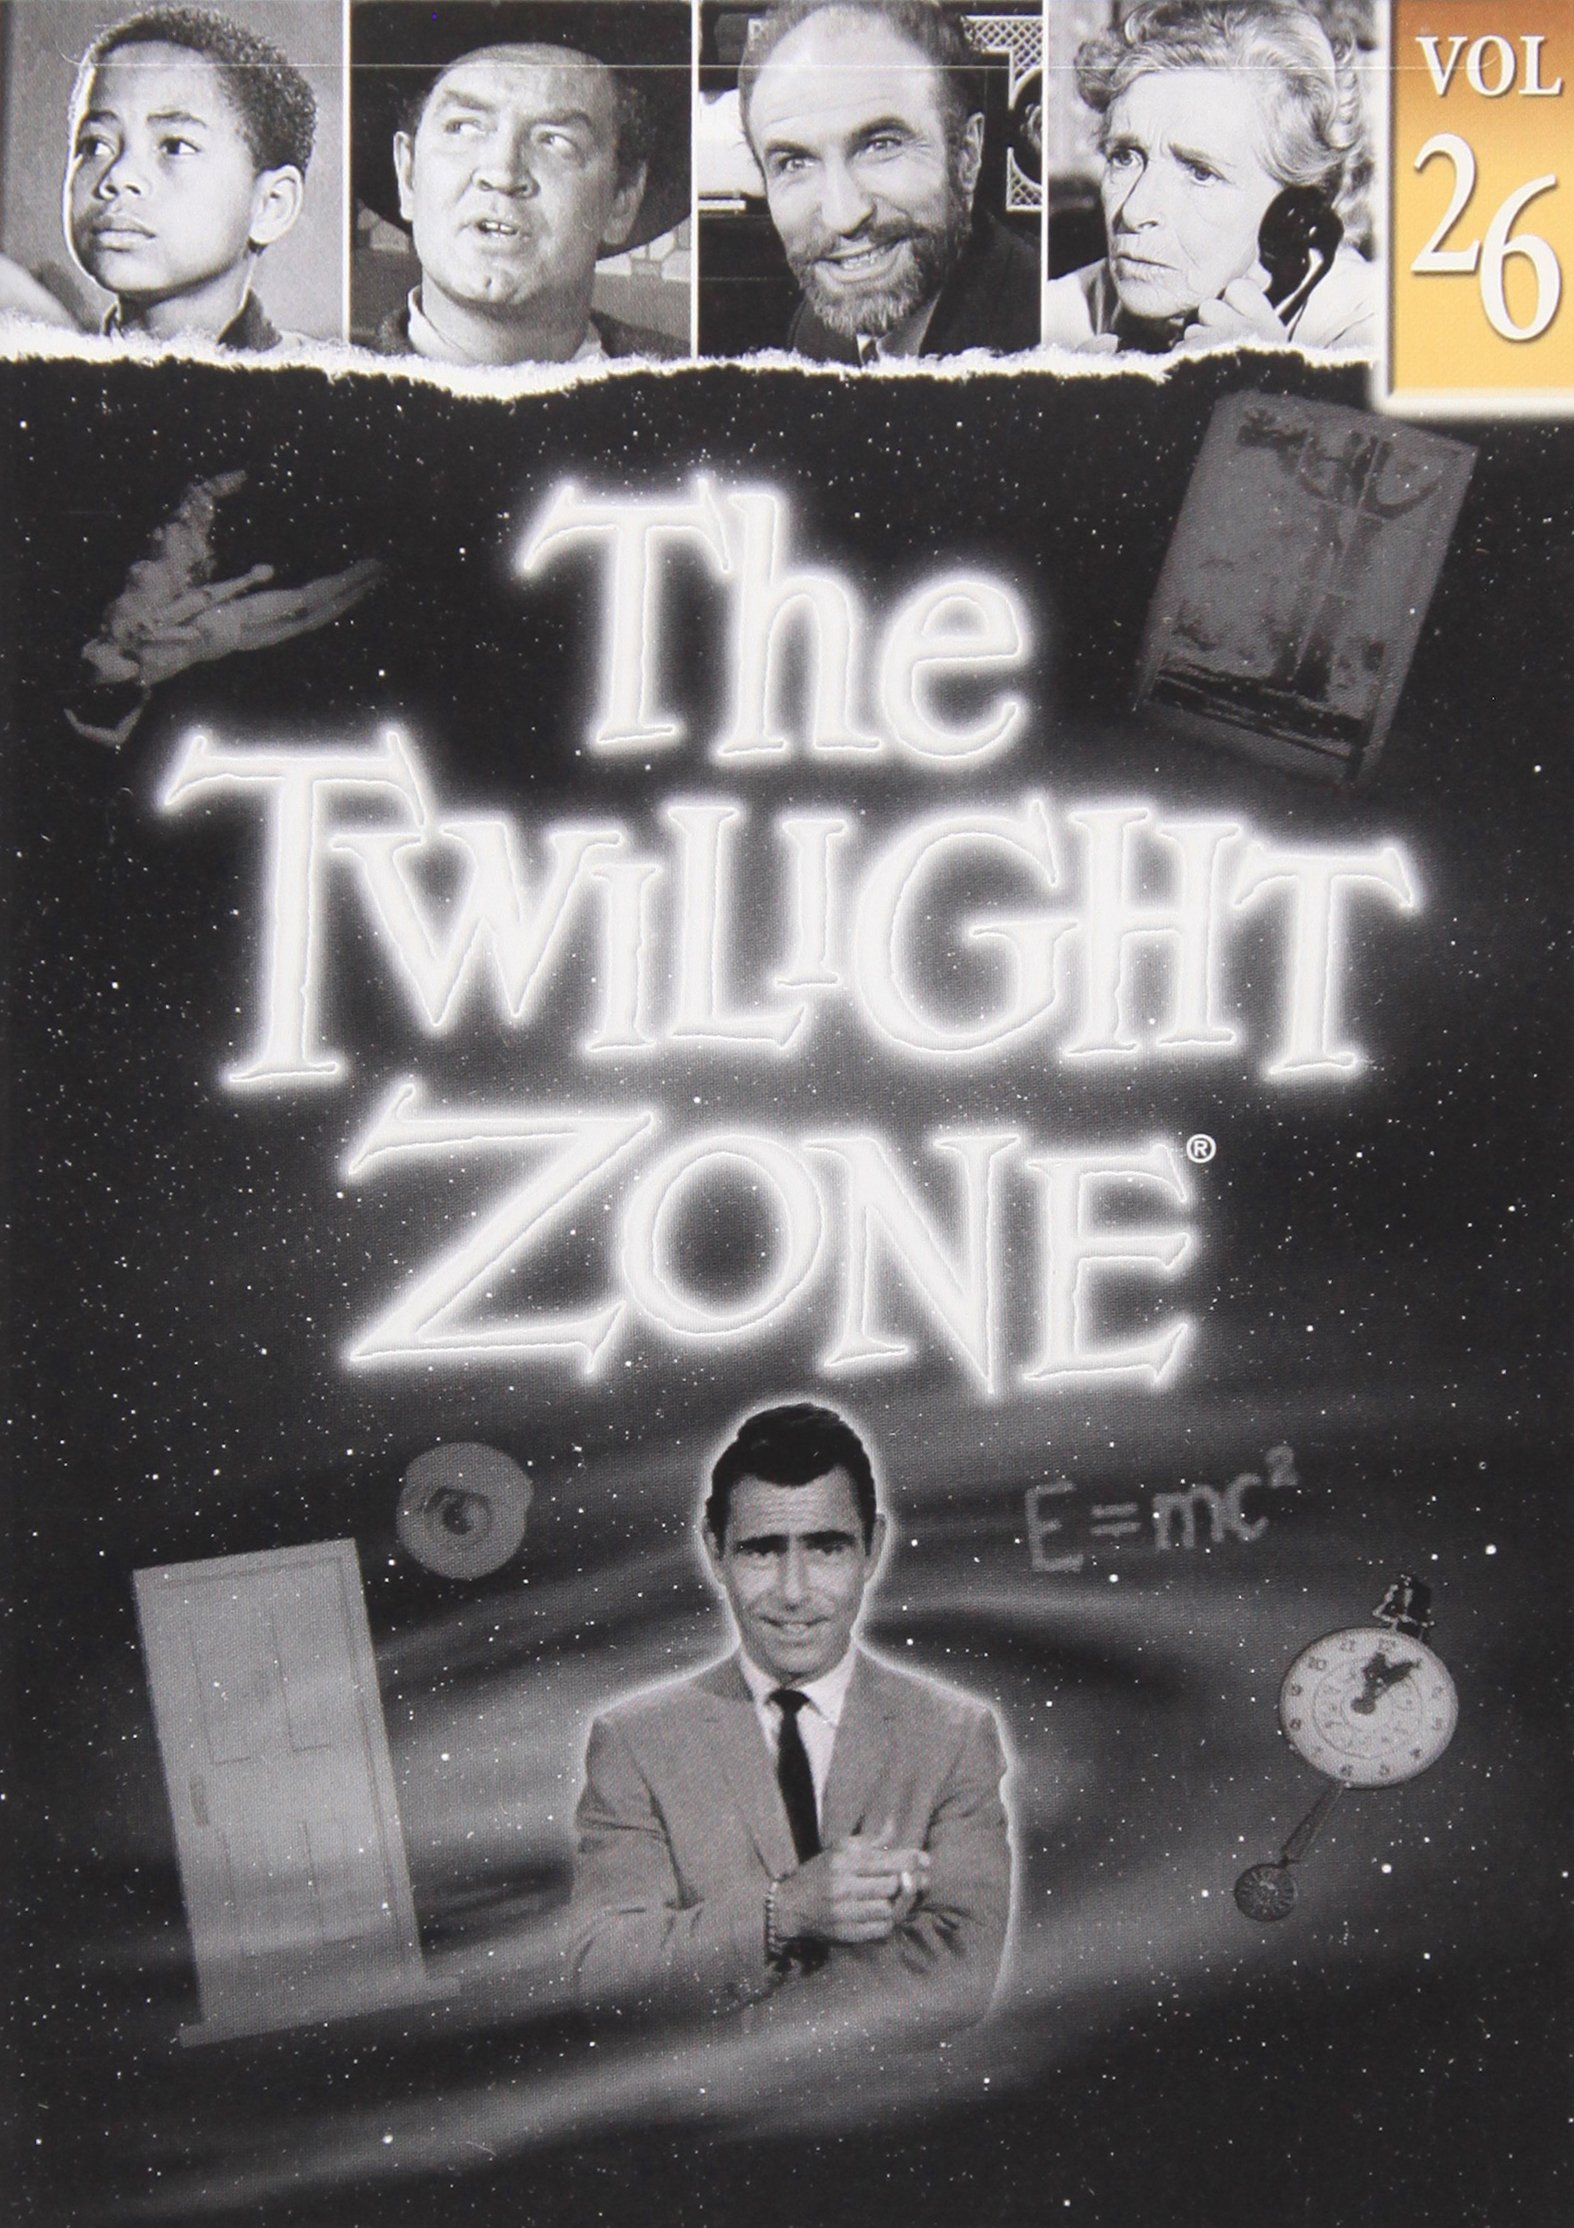 The Twilight Zone - Vol. 26